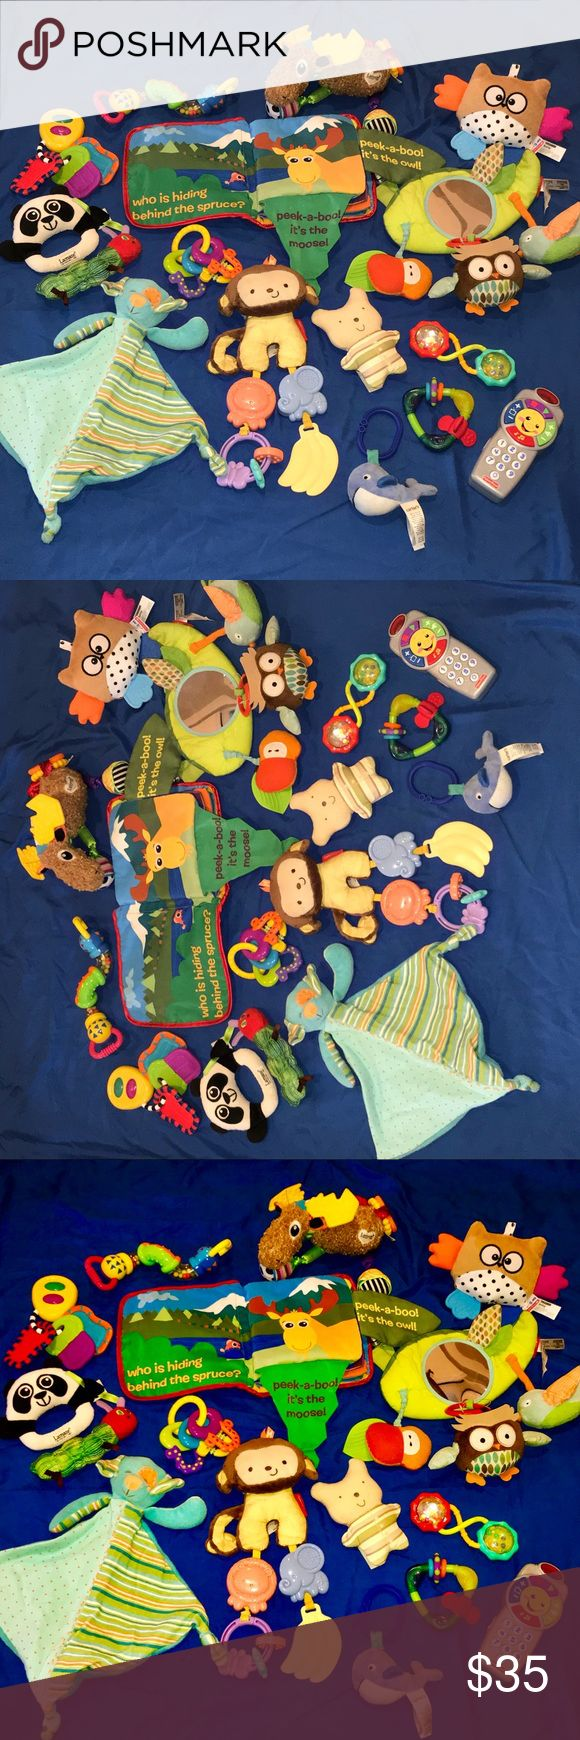 Baby toy lot mixed toys great deal Mixed brands and large toy lot !!  Including skip hop , Lamaze, garanimals , fisher price  Over 250$ in baby toys  Gently used well taken care of !!! lamaze, skip hop, garanimals Other